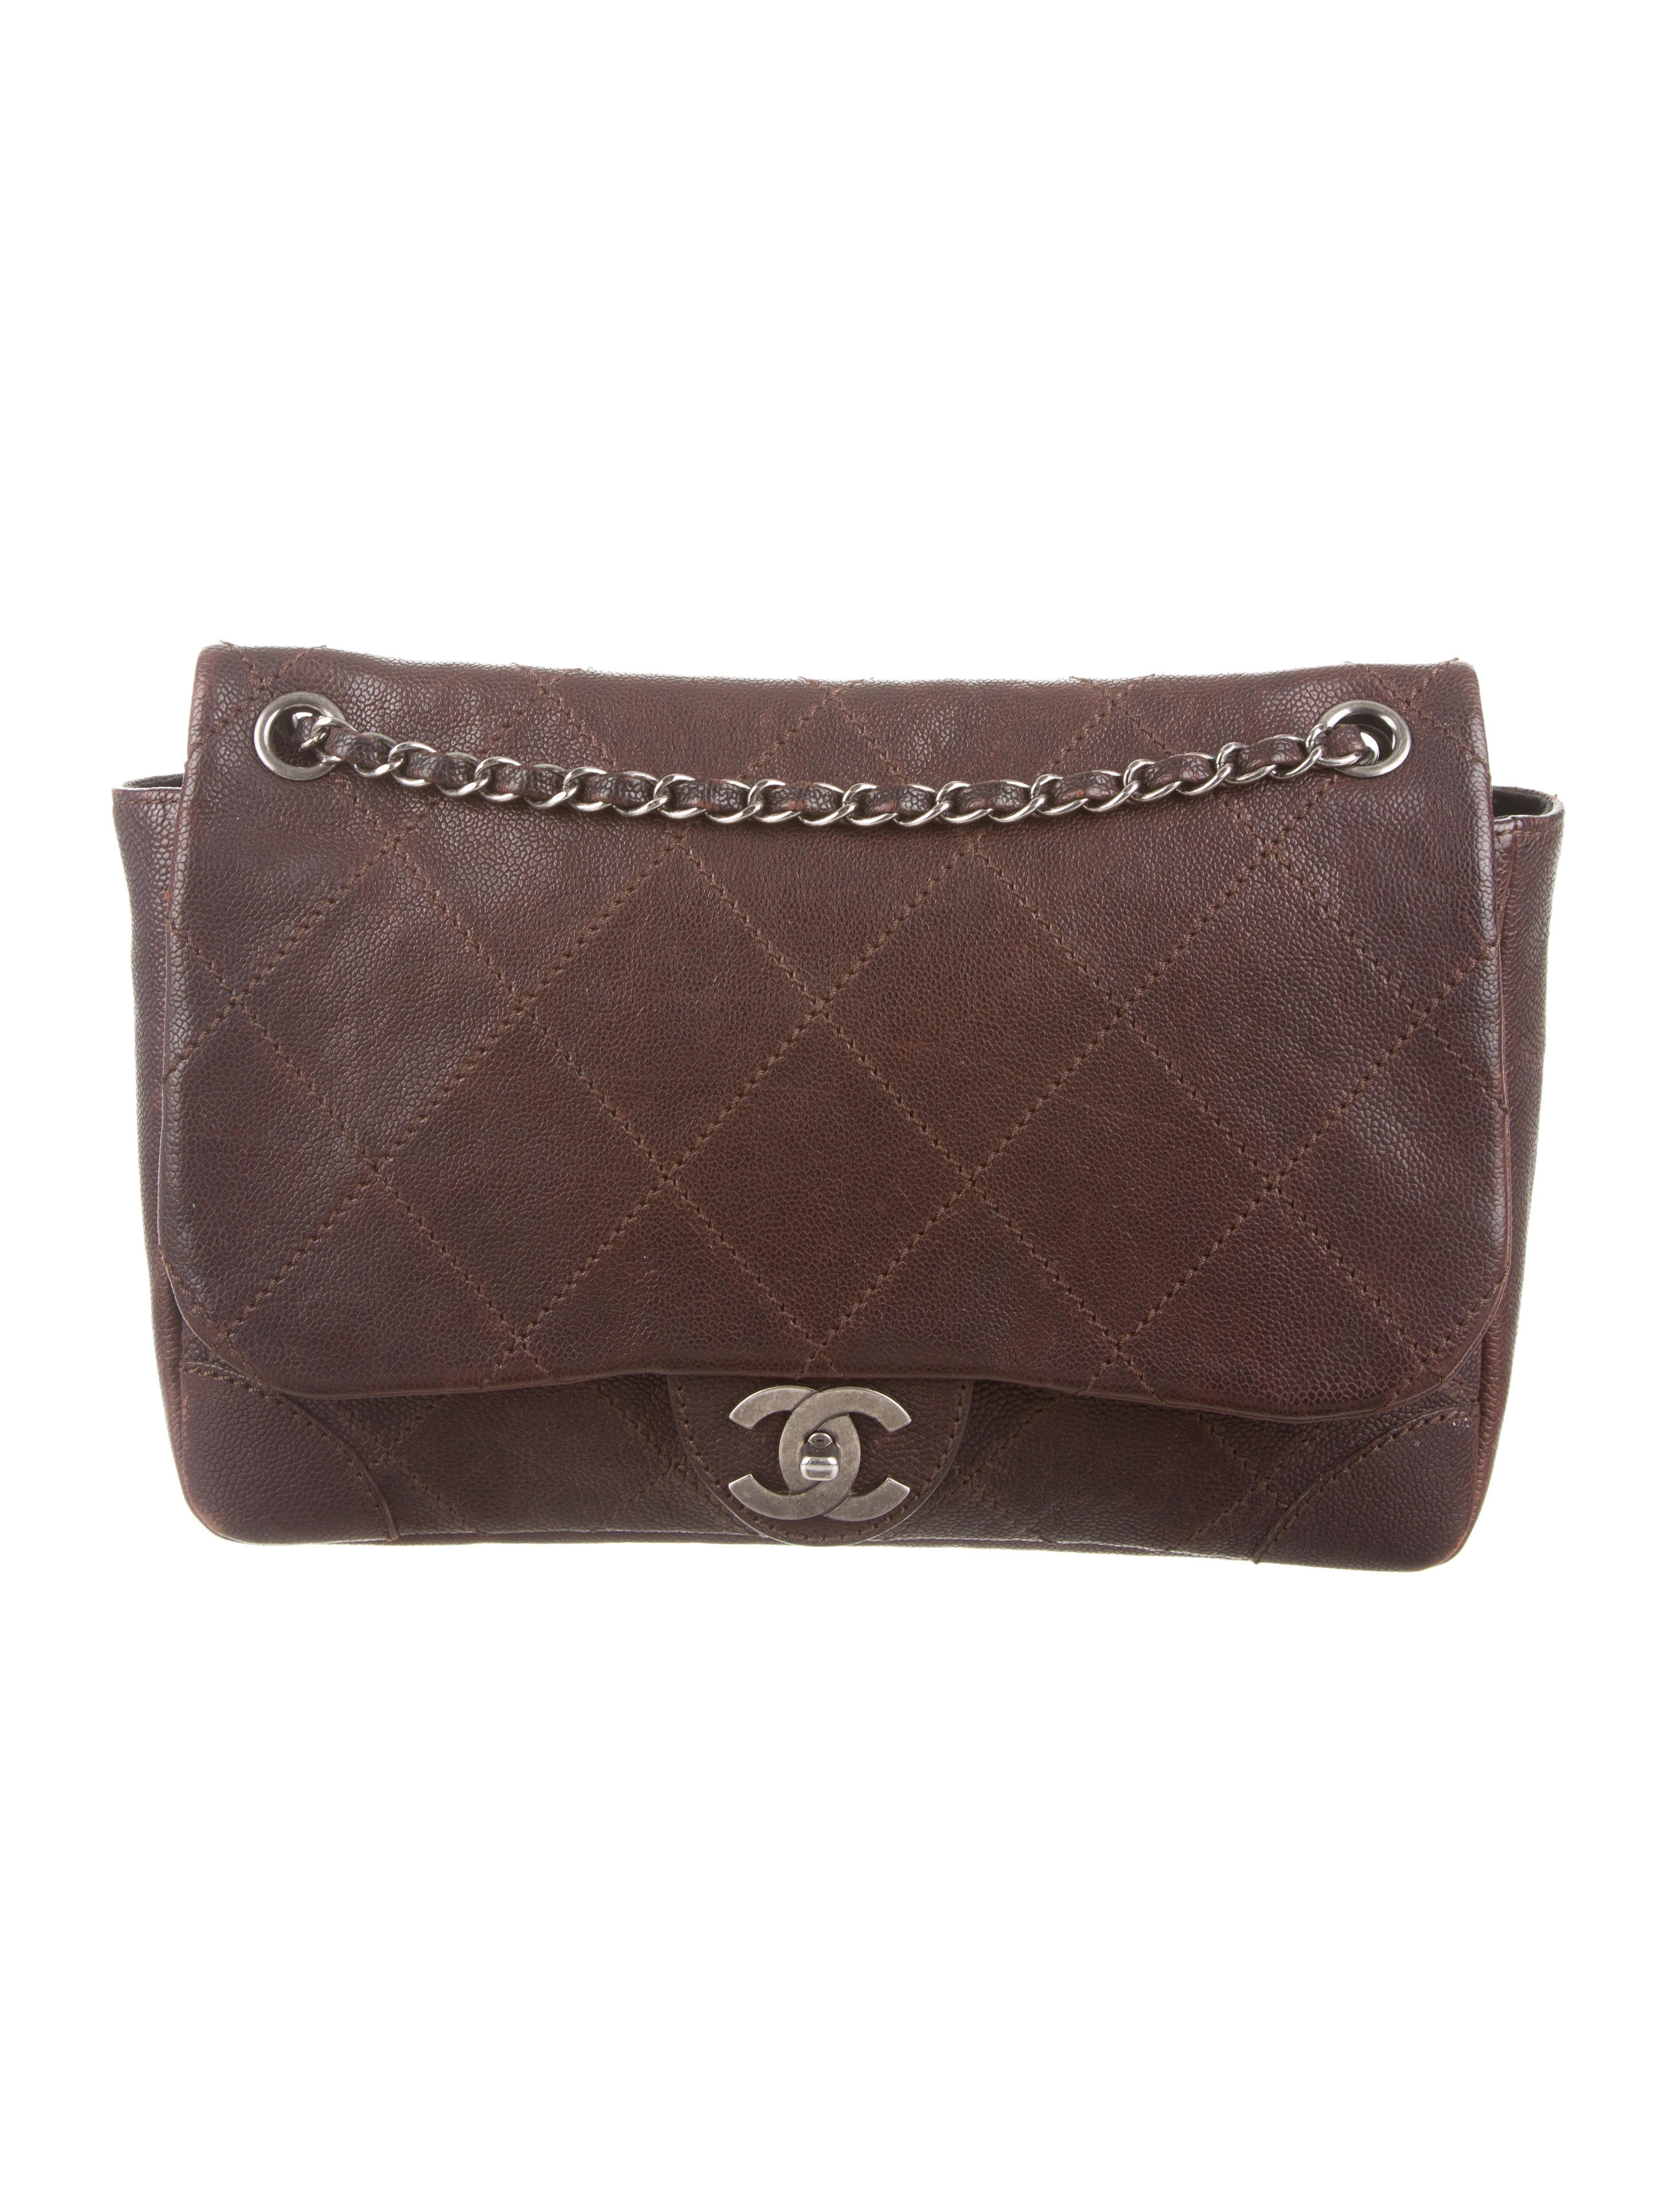 8c33f22503edbc Chanel Quilted Caviar Outdoor Ligne Flap Bag - Handbags - CHA87774 ...